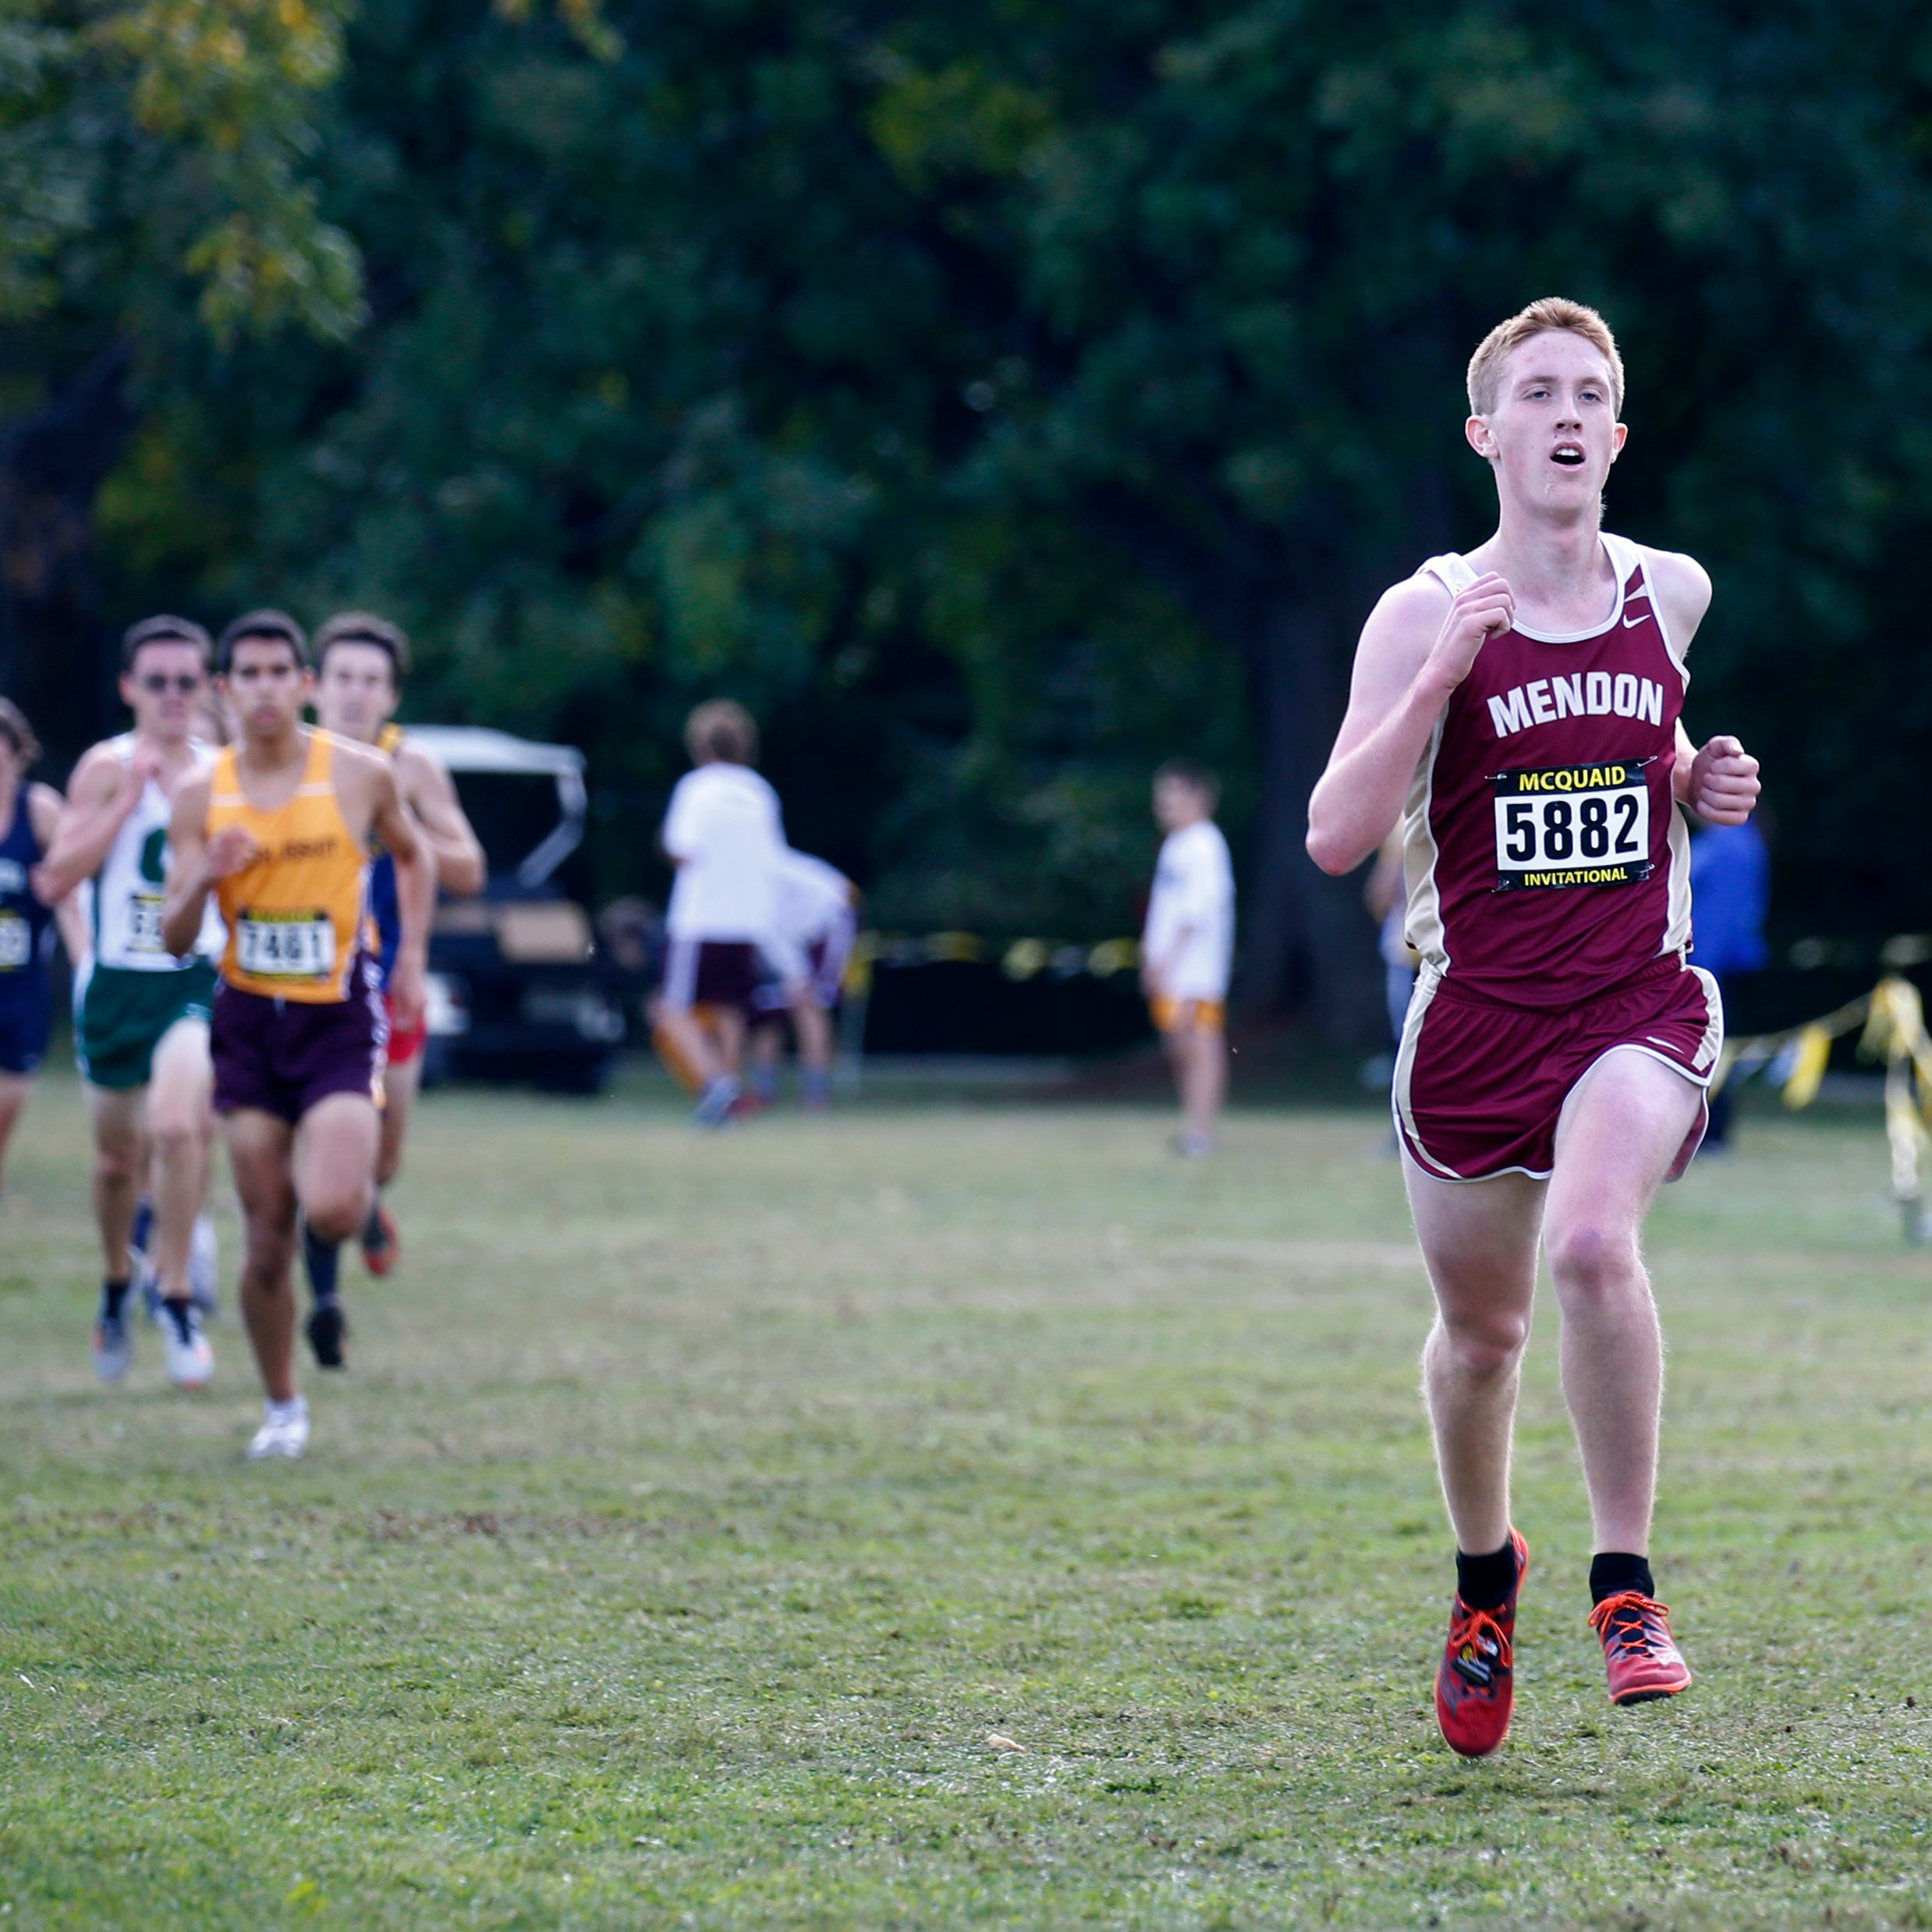 AGR Boys Cross Country Team: These are the best runners in Section V